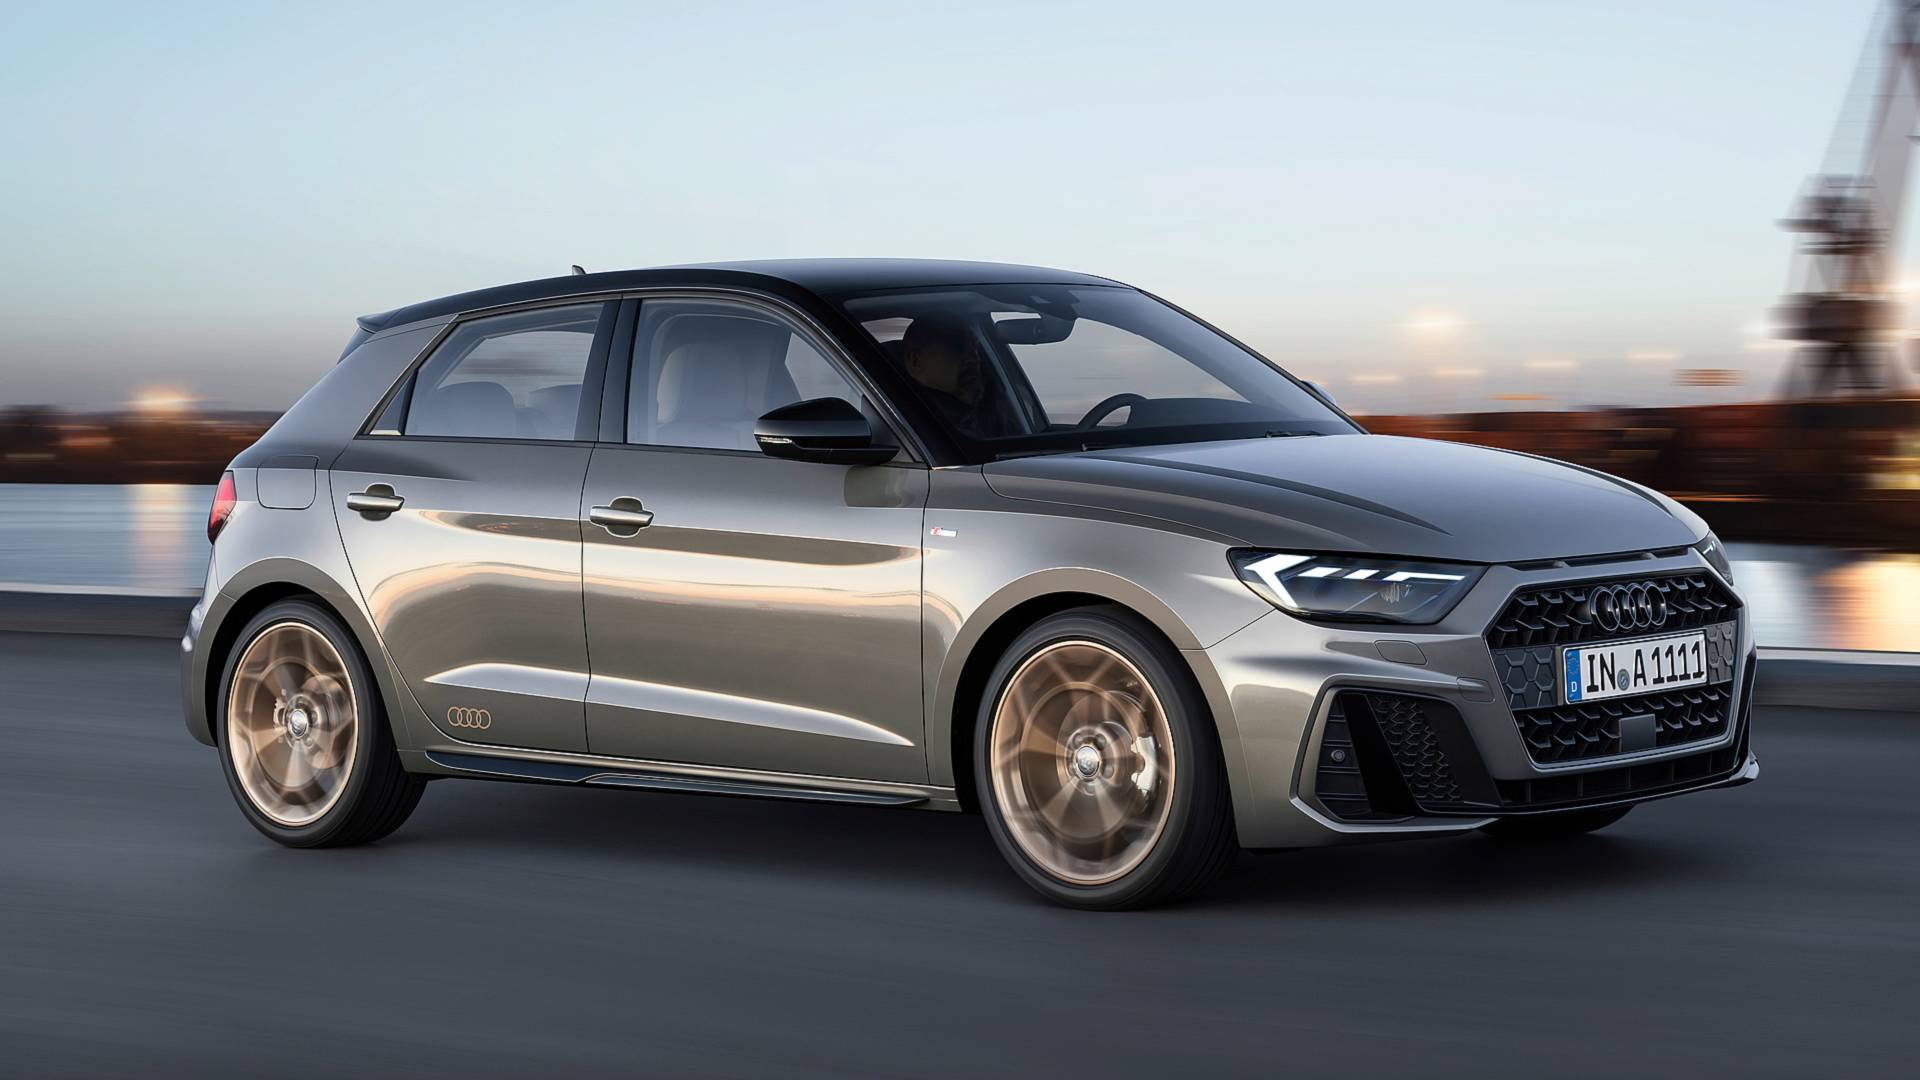 2019 audi a1 sportback revealed 40 tfsi boasts 2 0 liter. Black Bedroom Furniture Sets. Home Design Ideas